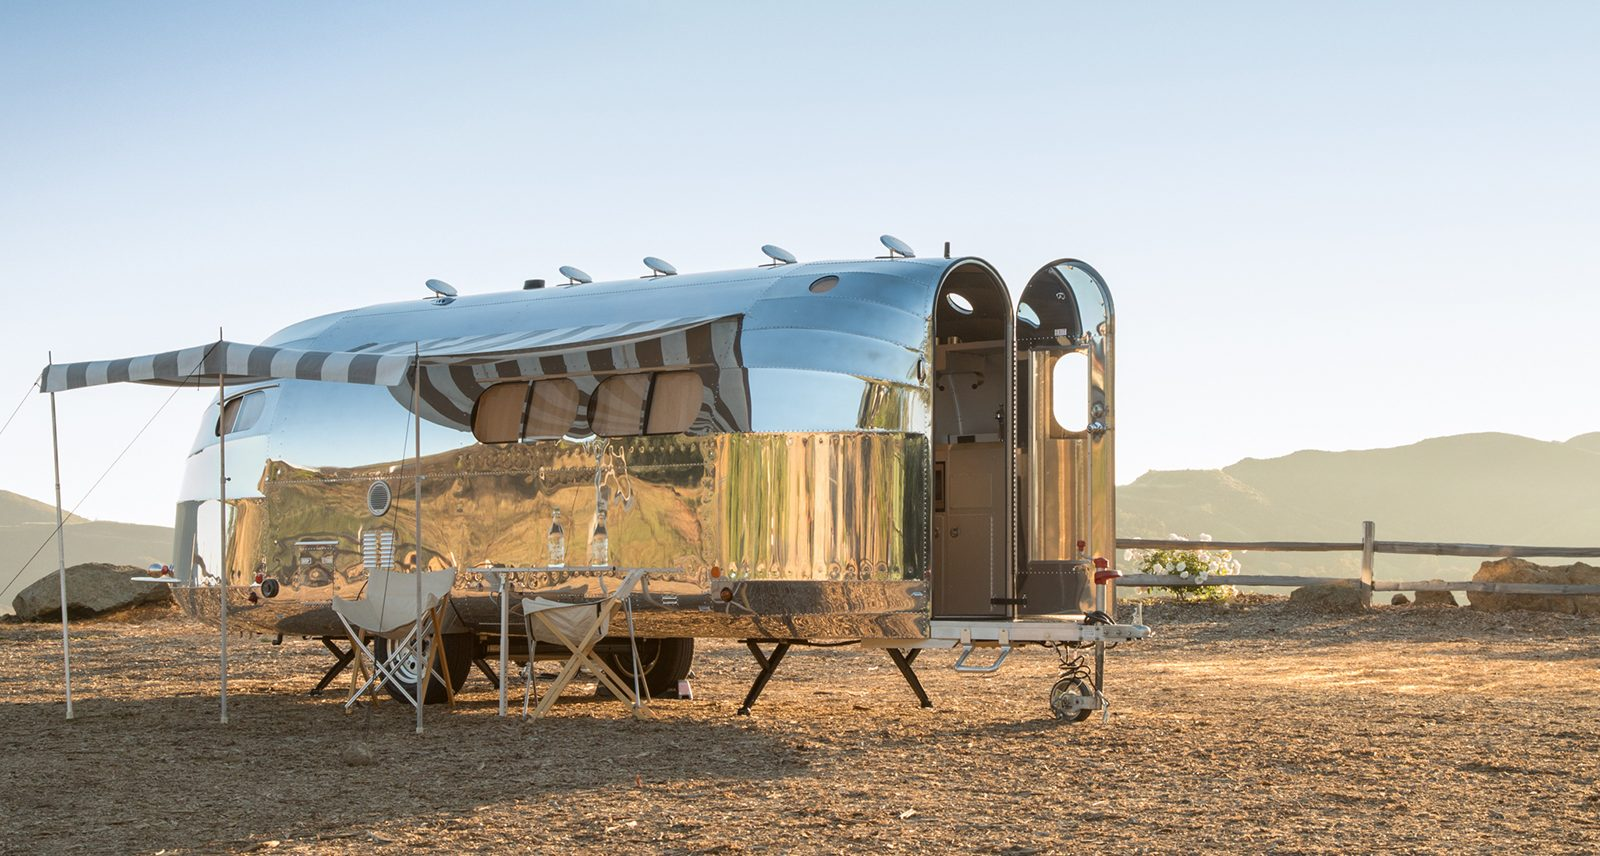 The Bowlus Road Chief Endless Highways Trailer Is a Portable Hotel Suite